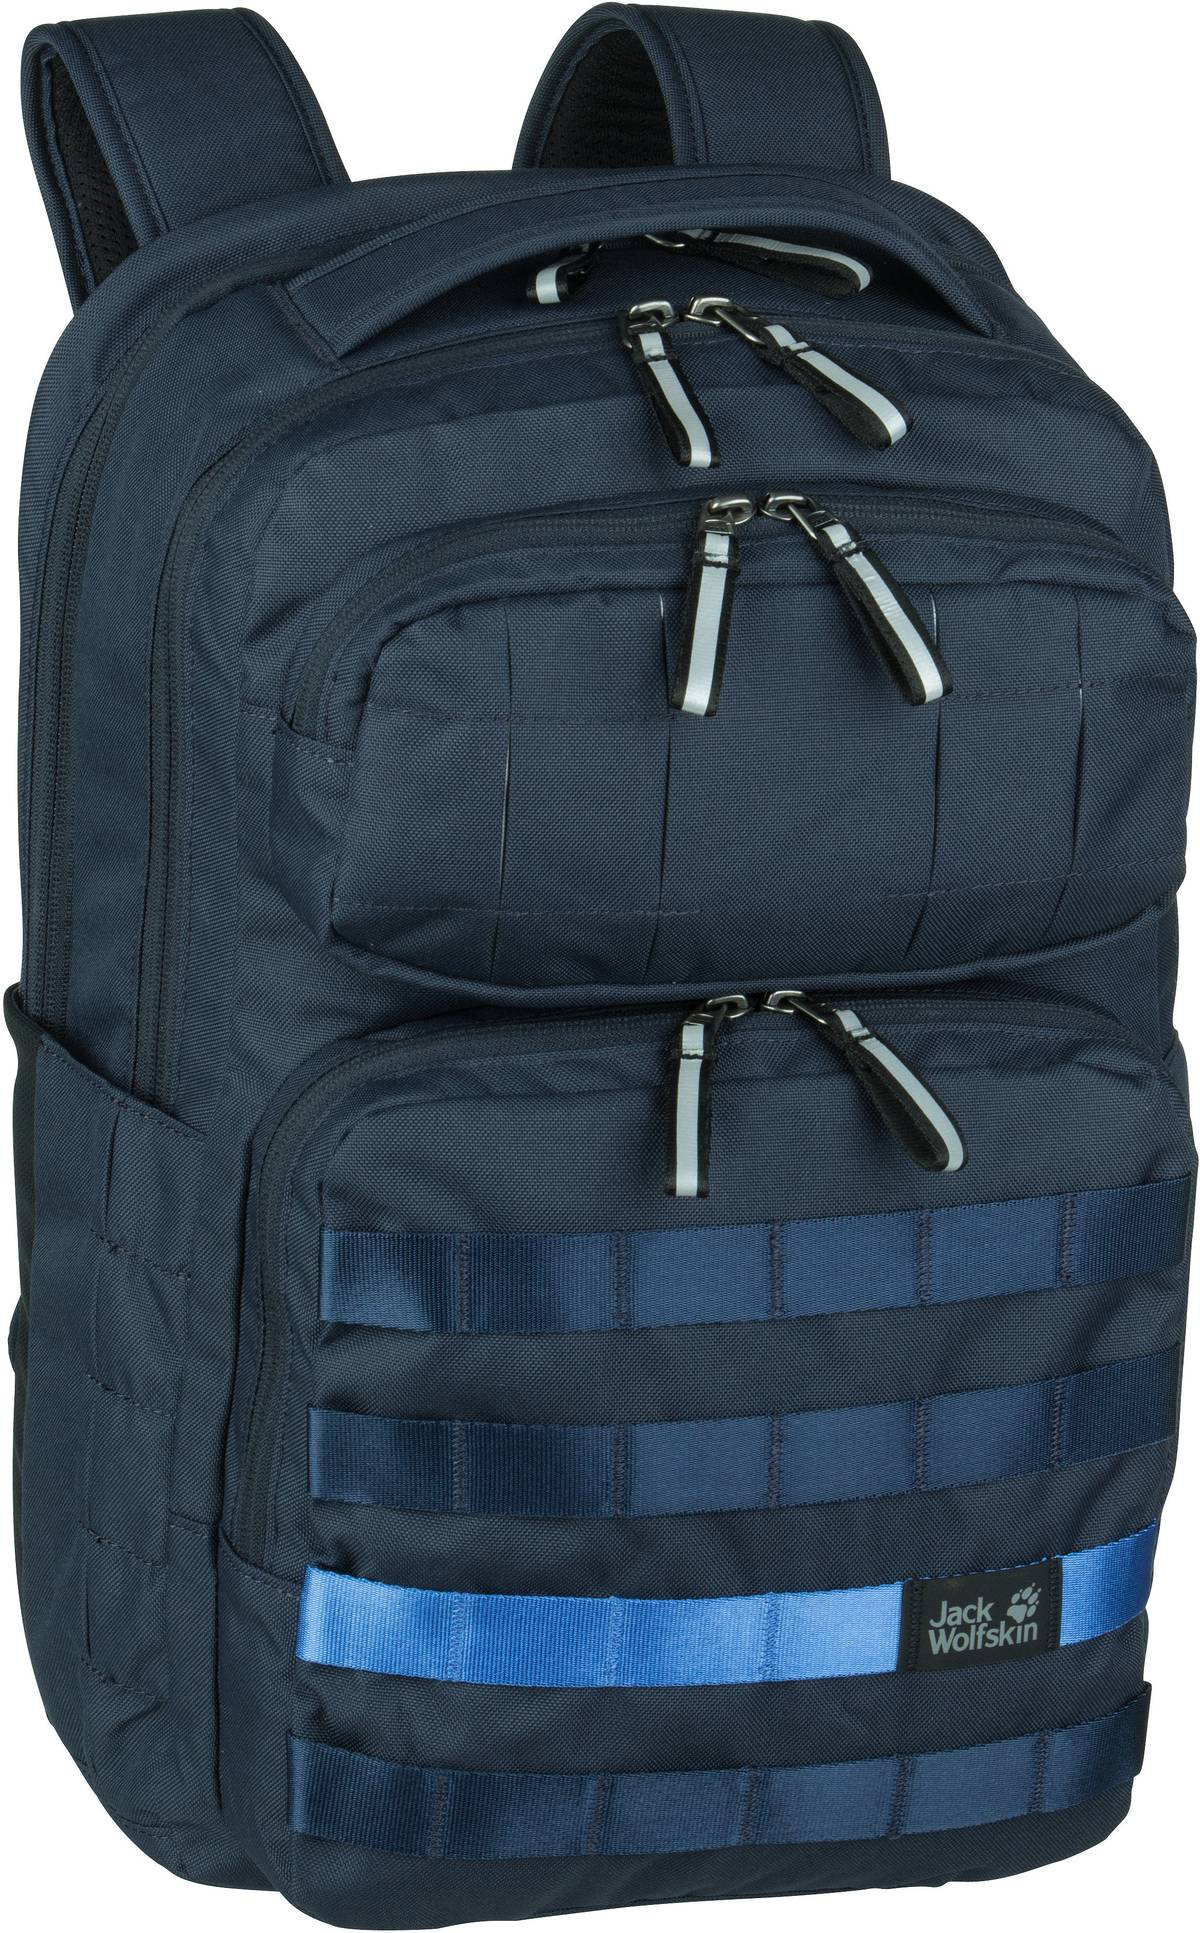 Schulrucksack TRT School Pack Night Blue (20 Liter)